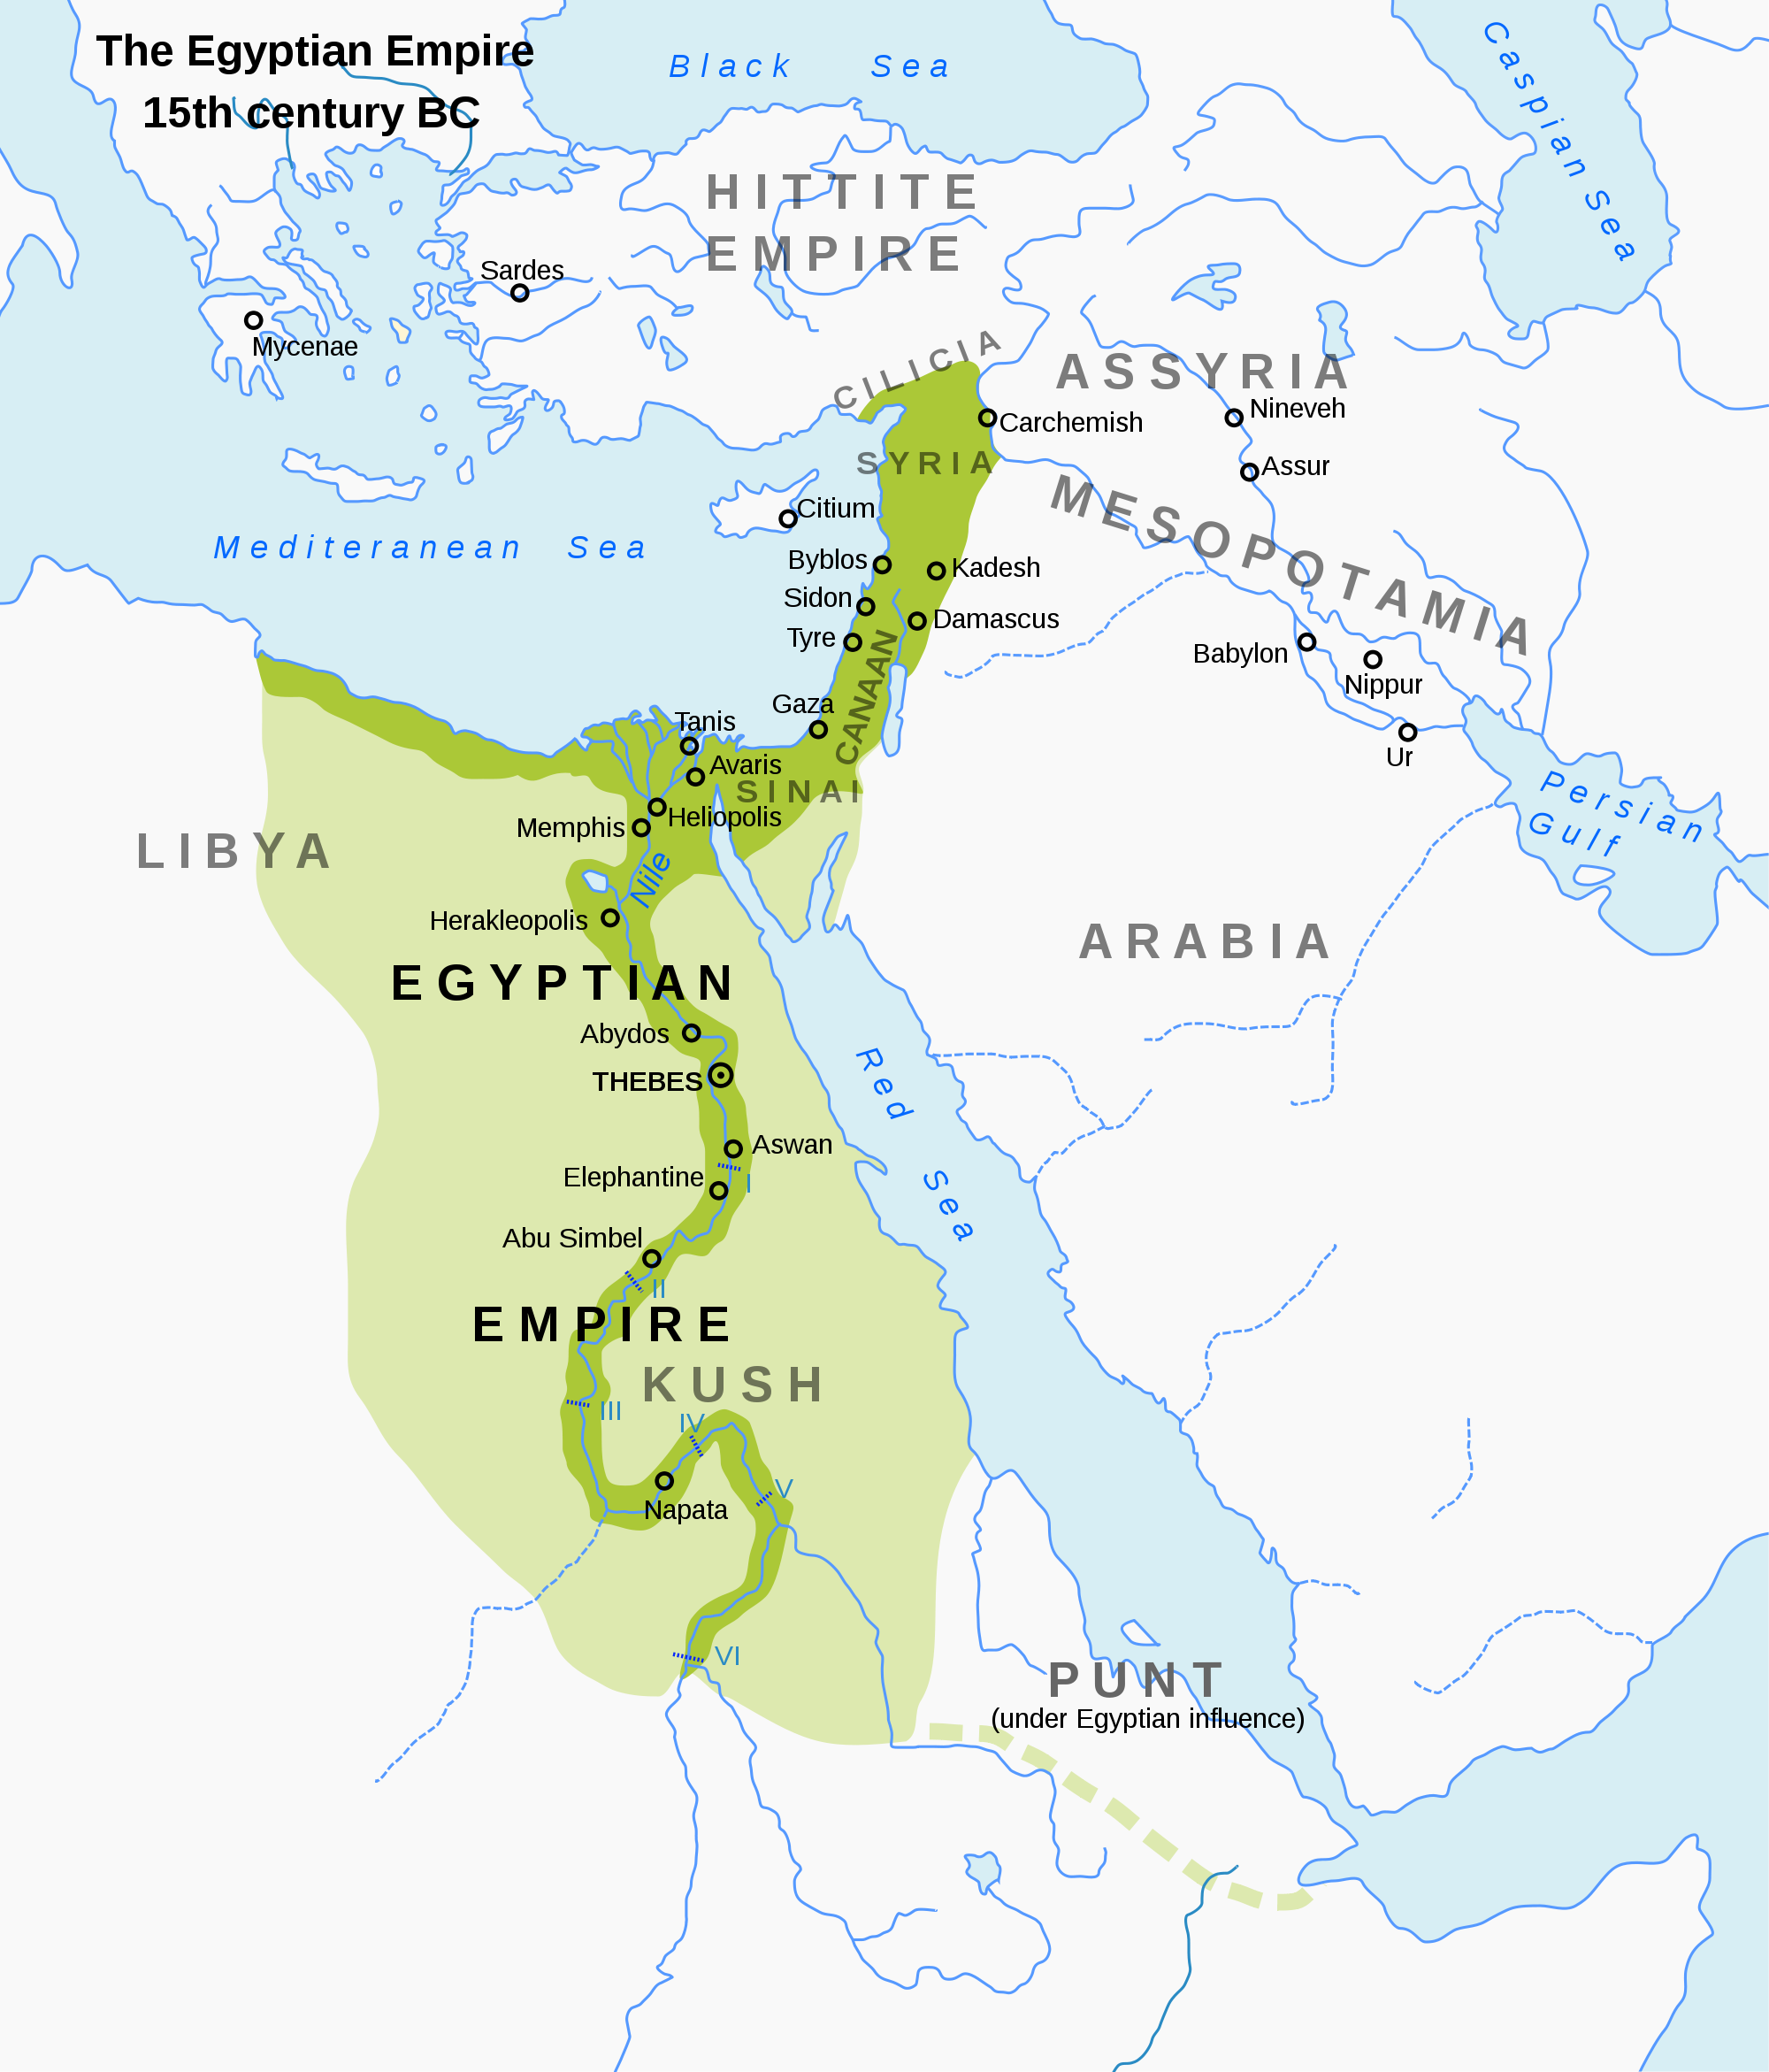 Kingdom of Kush Map | Map of the New Kingdom of Egypt, 1450 BC ... on rome egypt map, canaan egypt map, egypt nubian desert map, persia egypt map, mesopotamia egypt map, thebes egypt map, upper egypt map, memphis egypt map, tanis egypt map, beautiful egypt map, nubia egypt map, kemet egypt map, cush egypt map, ghana egypt map, akhetaton egypt map, ethiopia egypt map, meroe egypt map, ancient egypt map, purple egypt map, napata egypt map,